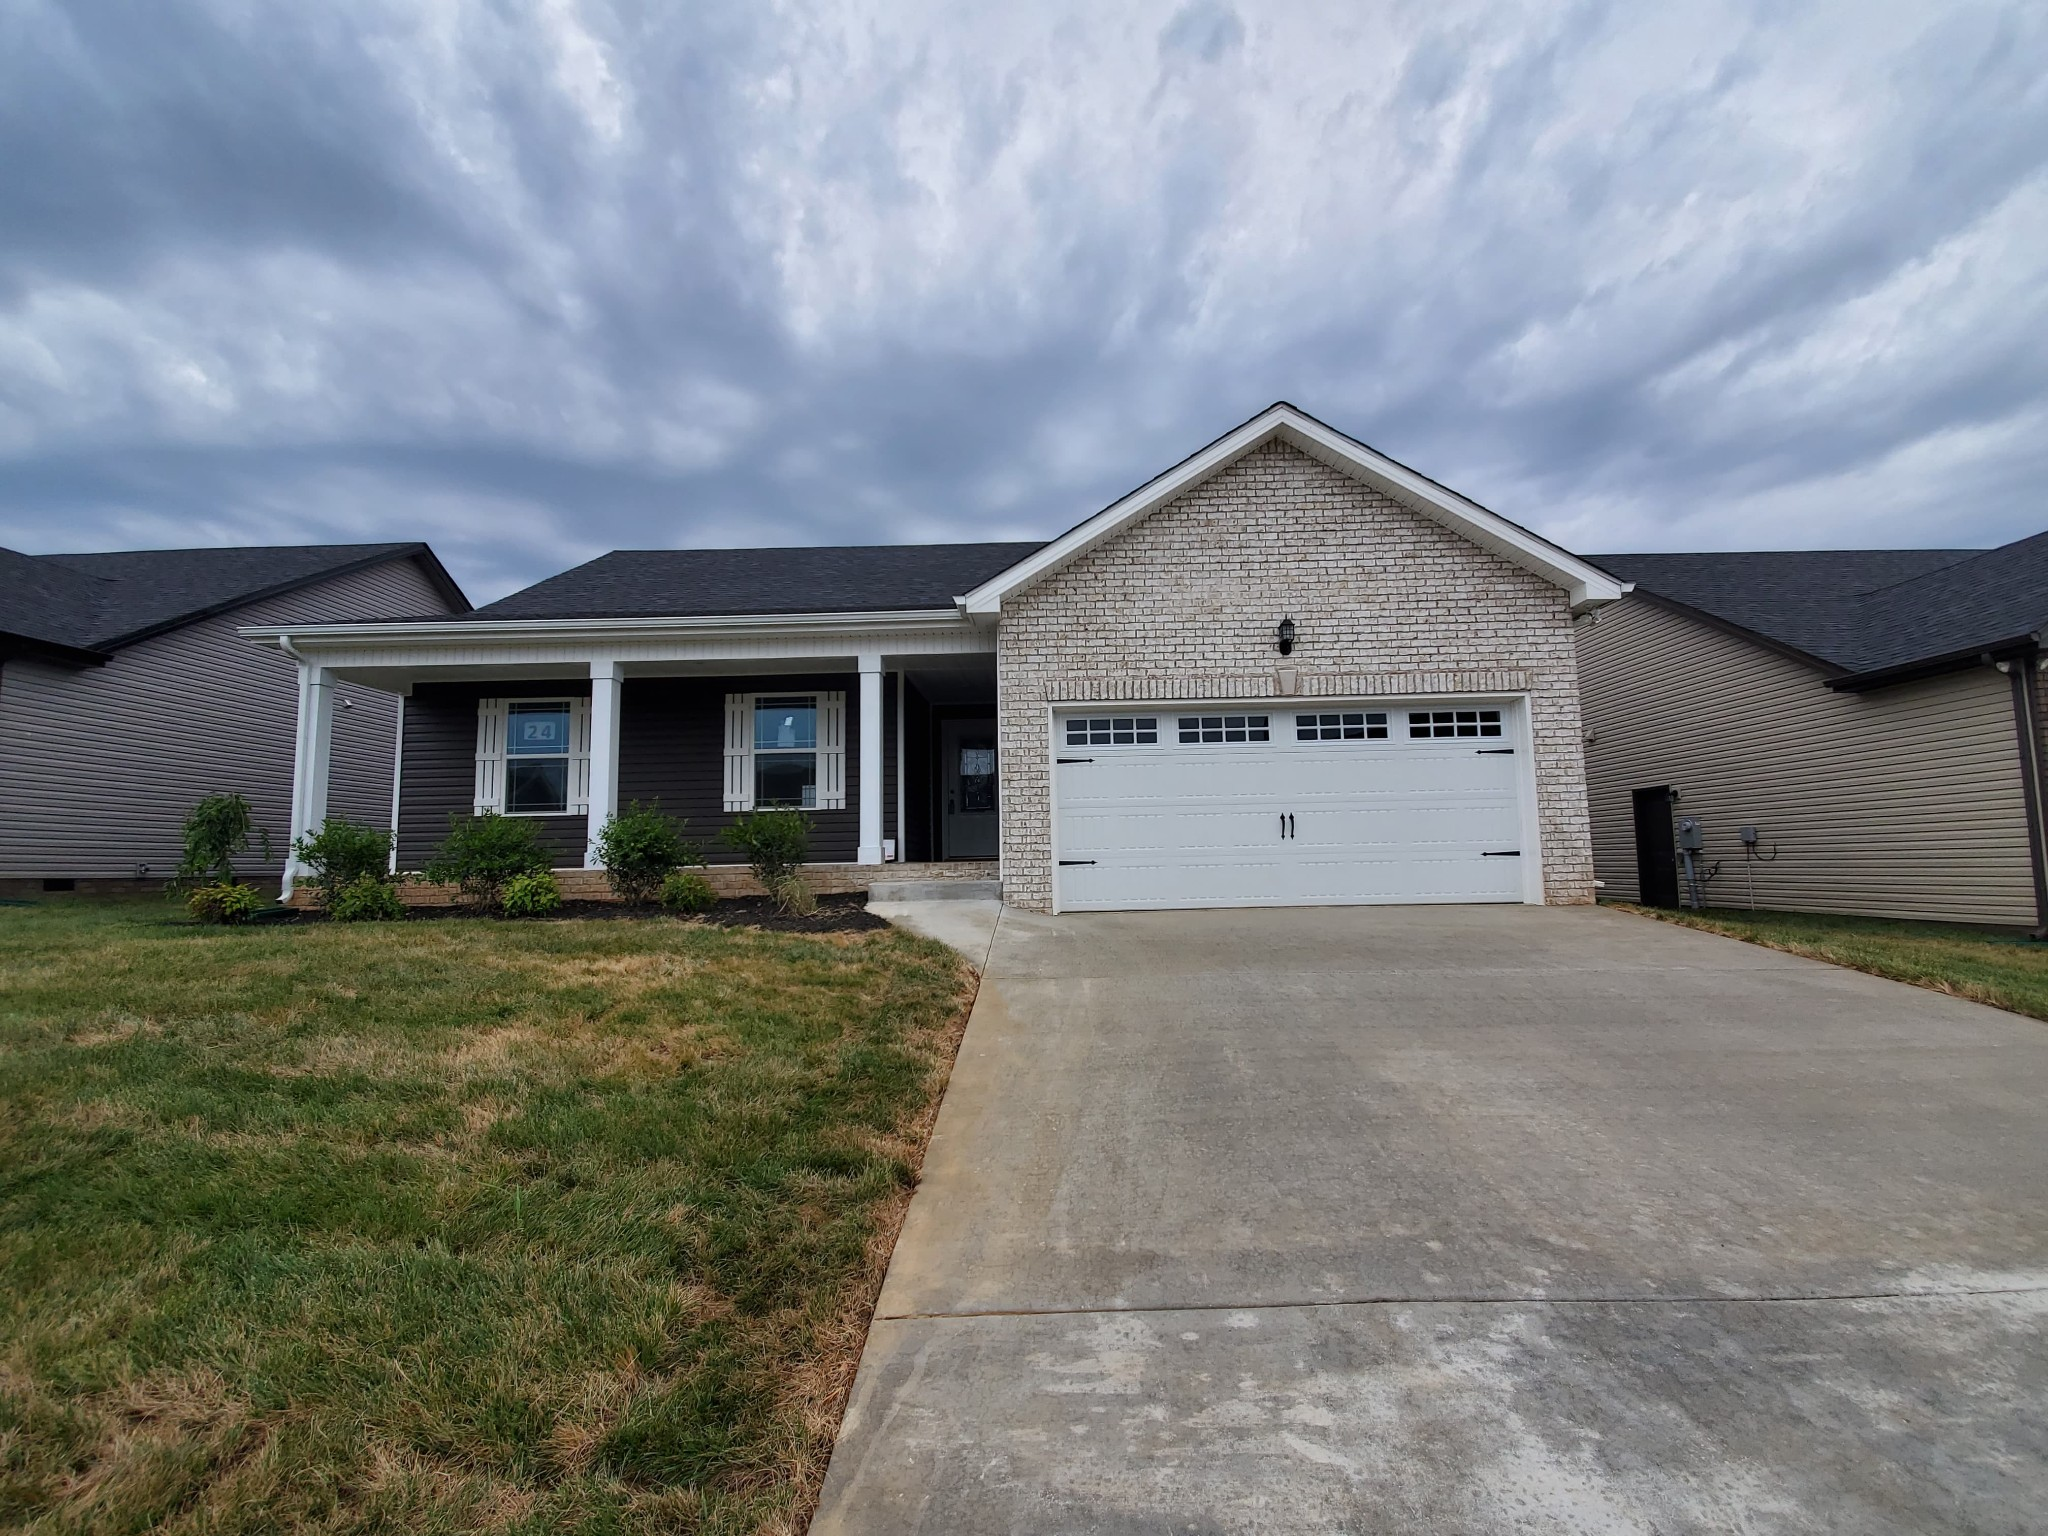 156 Ambridge St, Oak Grove, KY 42262 - Oak Grove, KY real estate listing